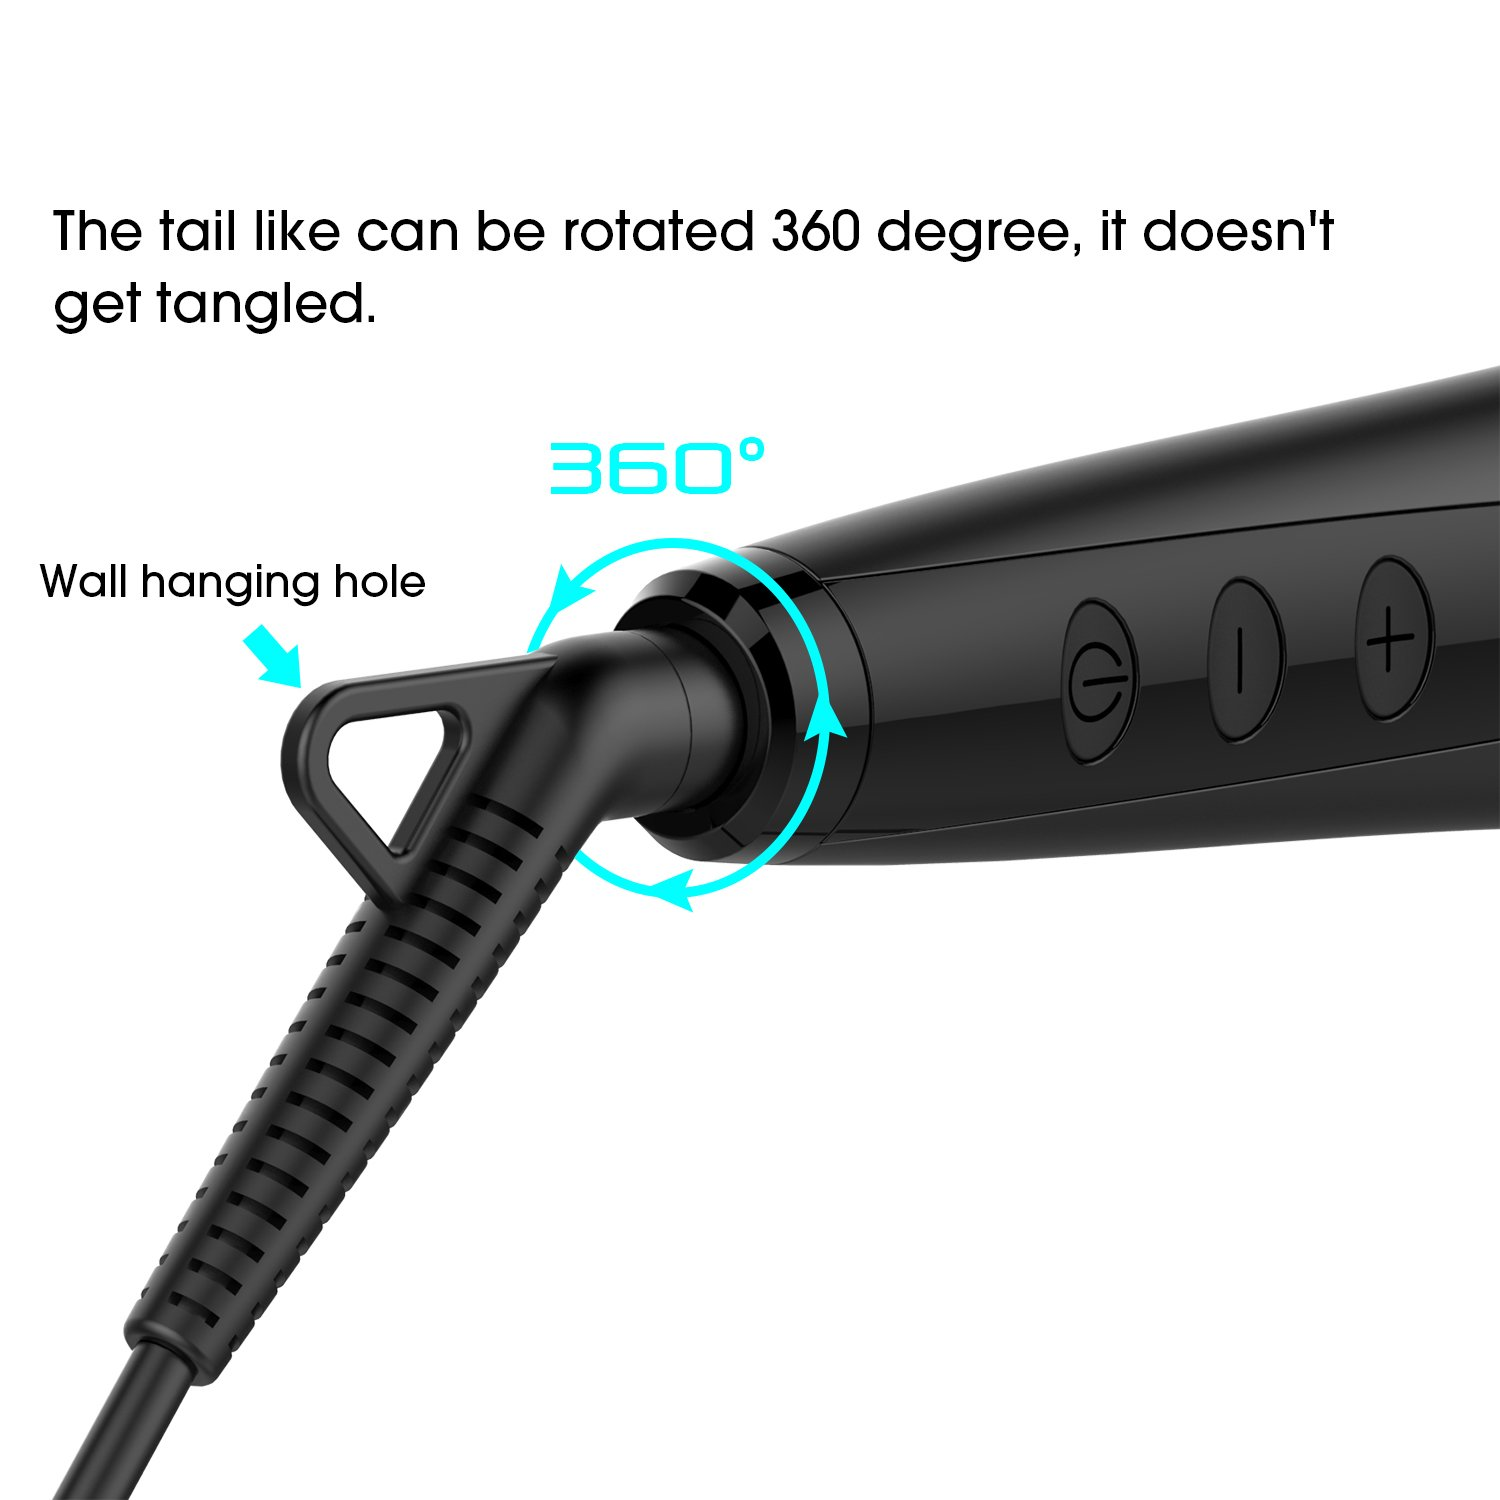 Enhanced Hair Straightener Brush by MiroPure, 2-in-1 Ionic Straightening Brush with Anti-Scald Feature, Auto Temperature Lock and Auto-off Function (Black) by MiroPure (Image #5)